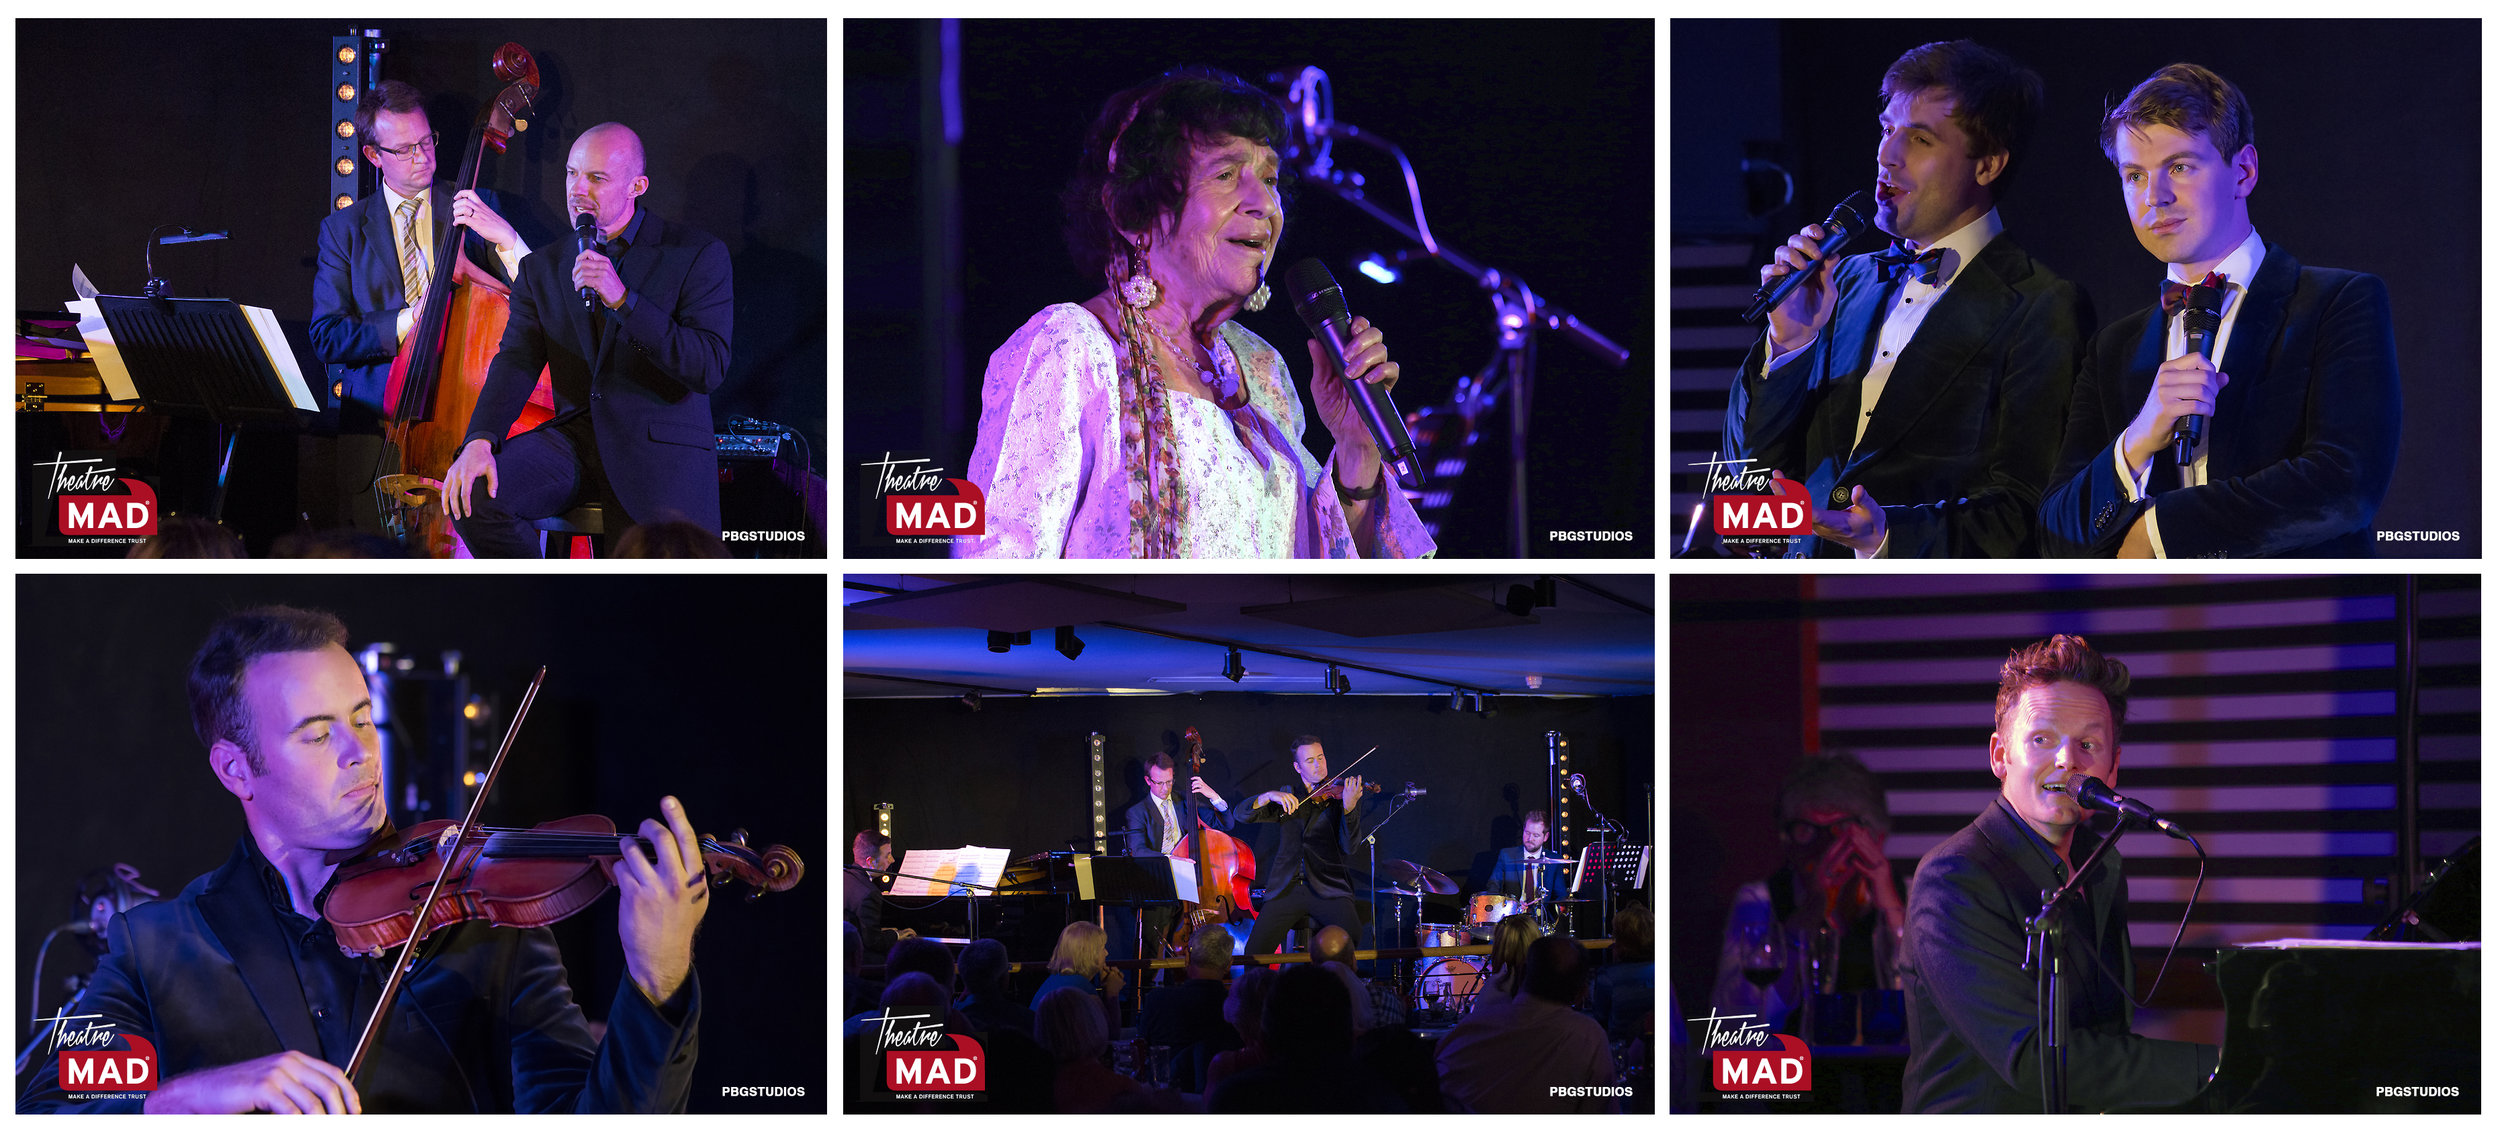 Gary Williams and friends cabaret in aid of the MAD trust (see Press and Events page for full gallery)